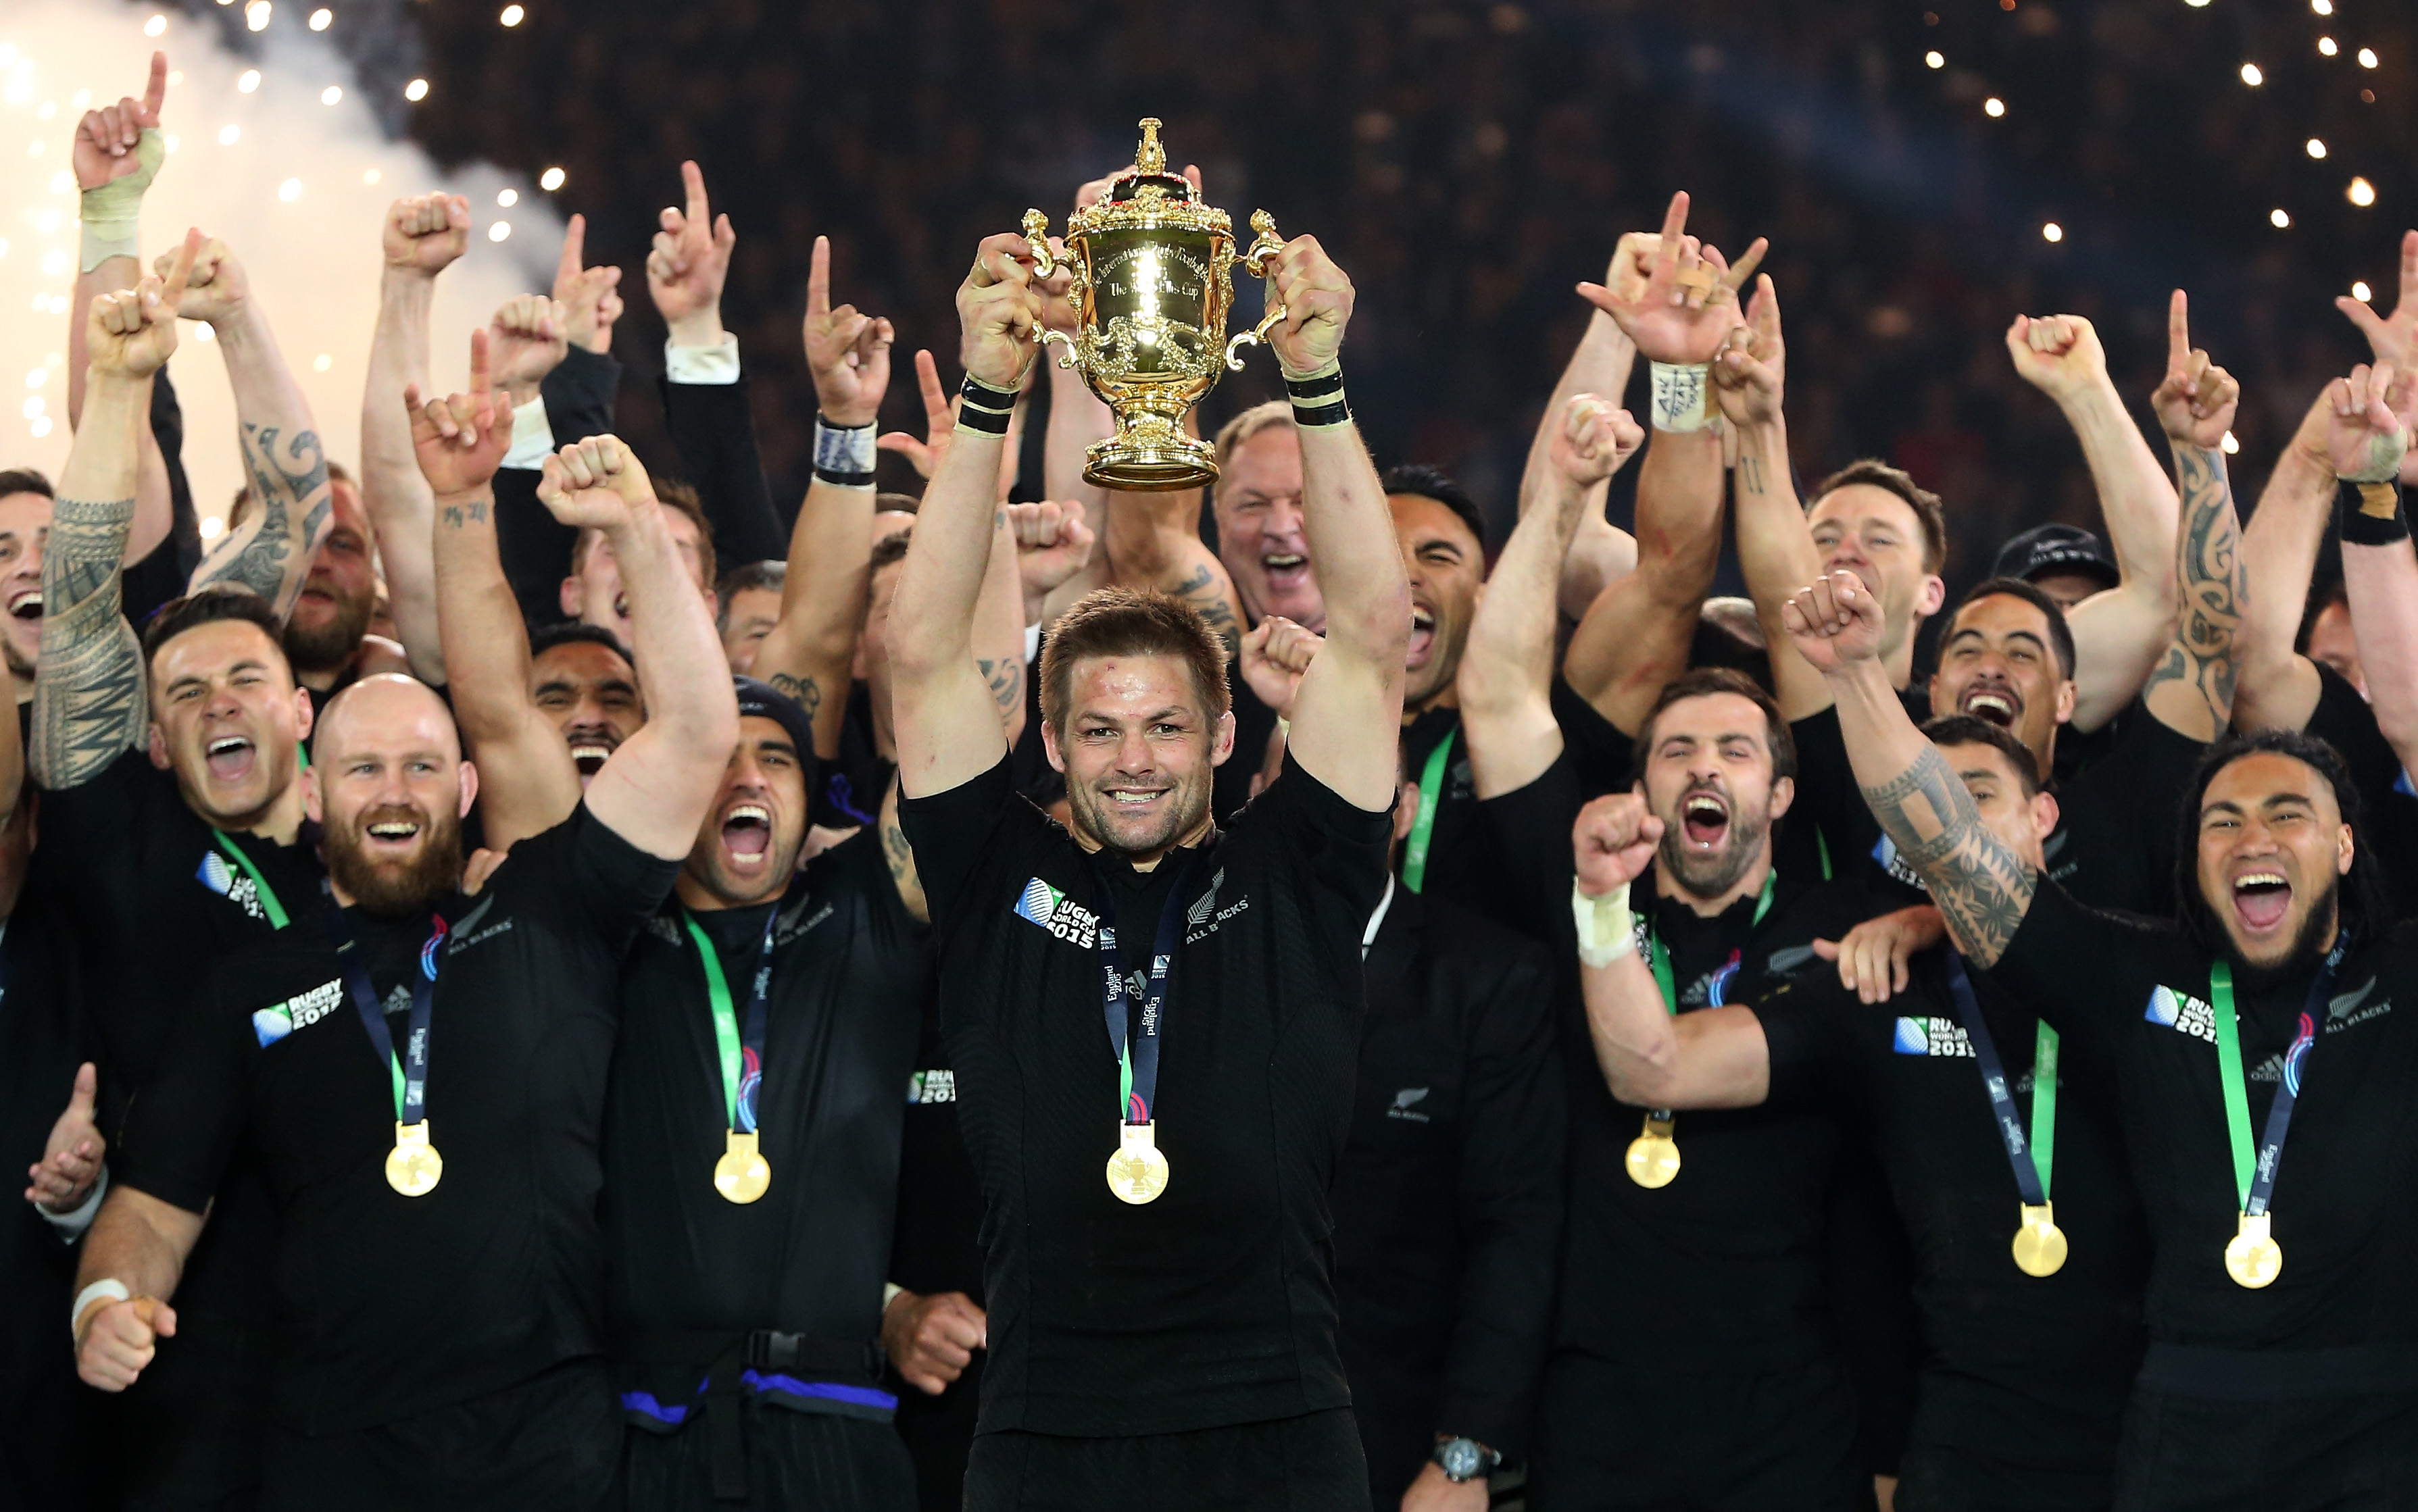 Richie McCaw of New Zealand lifts the Webb Ellis Cup following victory in the 2015 Rugby World Cup Final match between New Zealand and Australia at Twickenham.